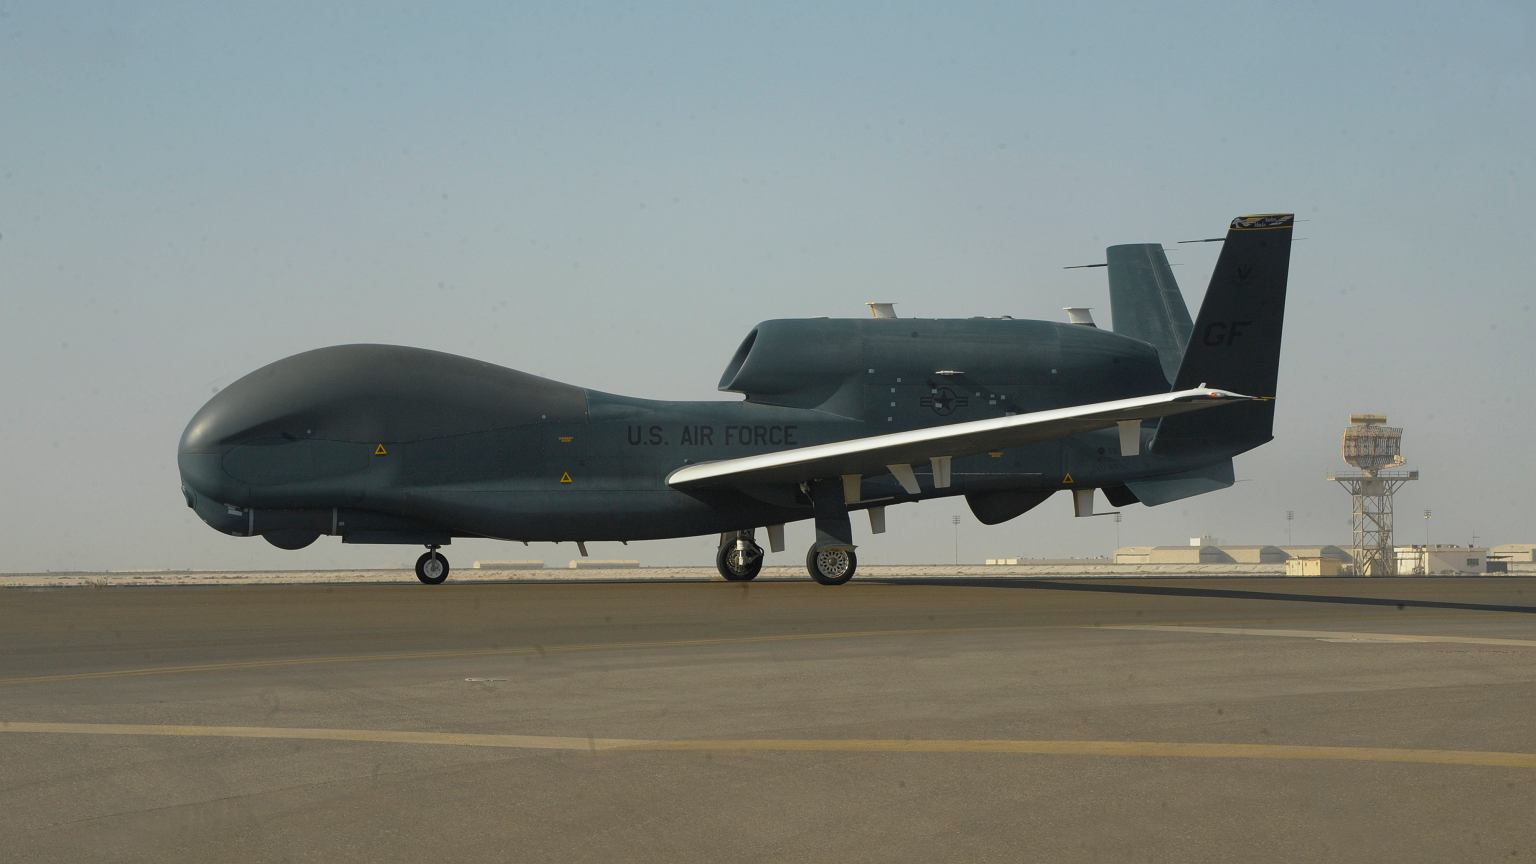 The American drone MQ-4C Triton shot down by Iran would be more